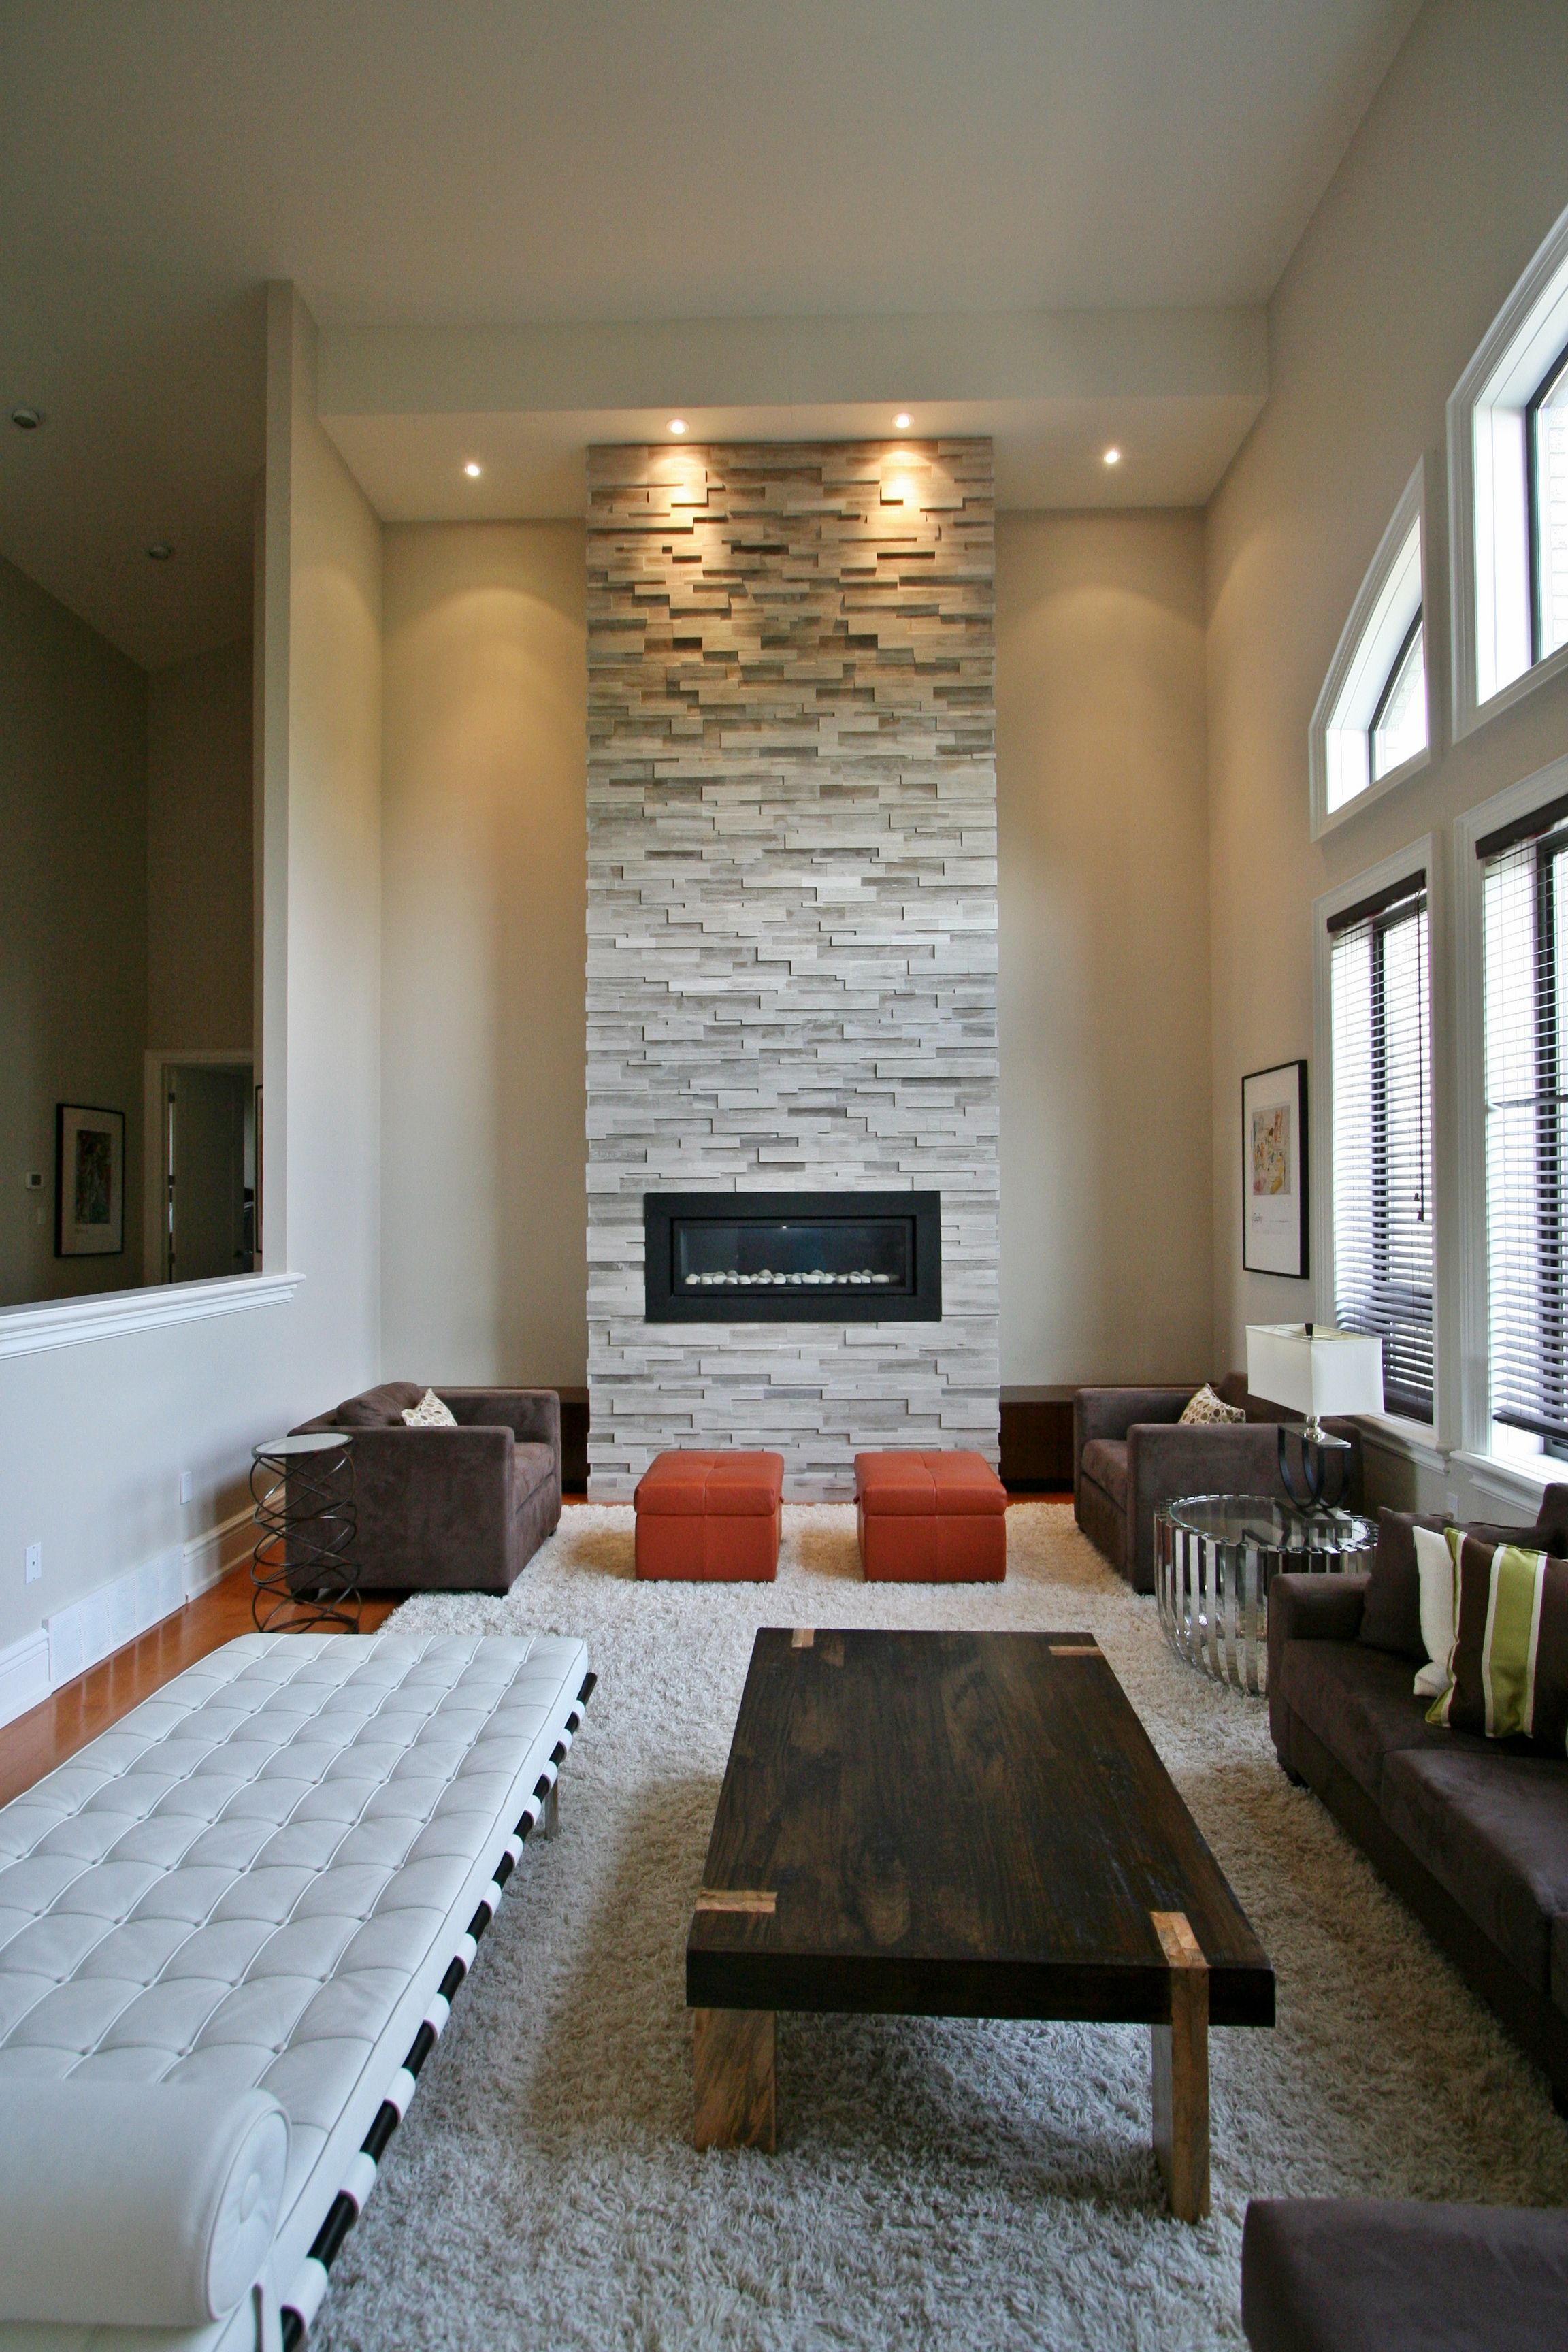 Strips Natural Stone Erthcoverings Popular Interior Design Popular Interiors House Design